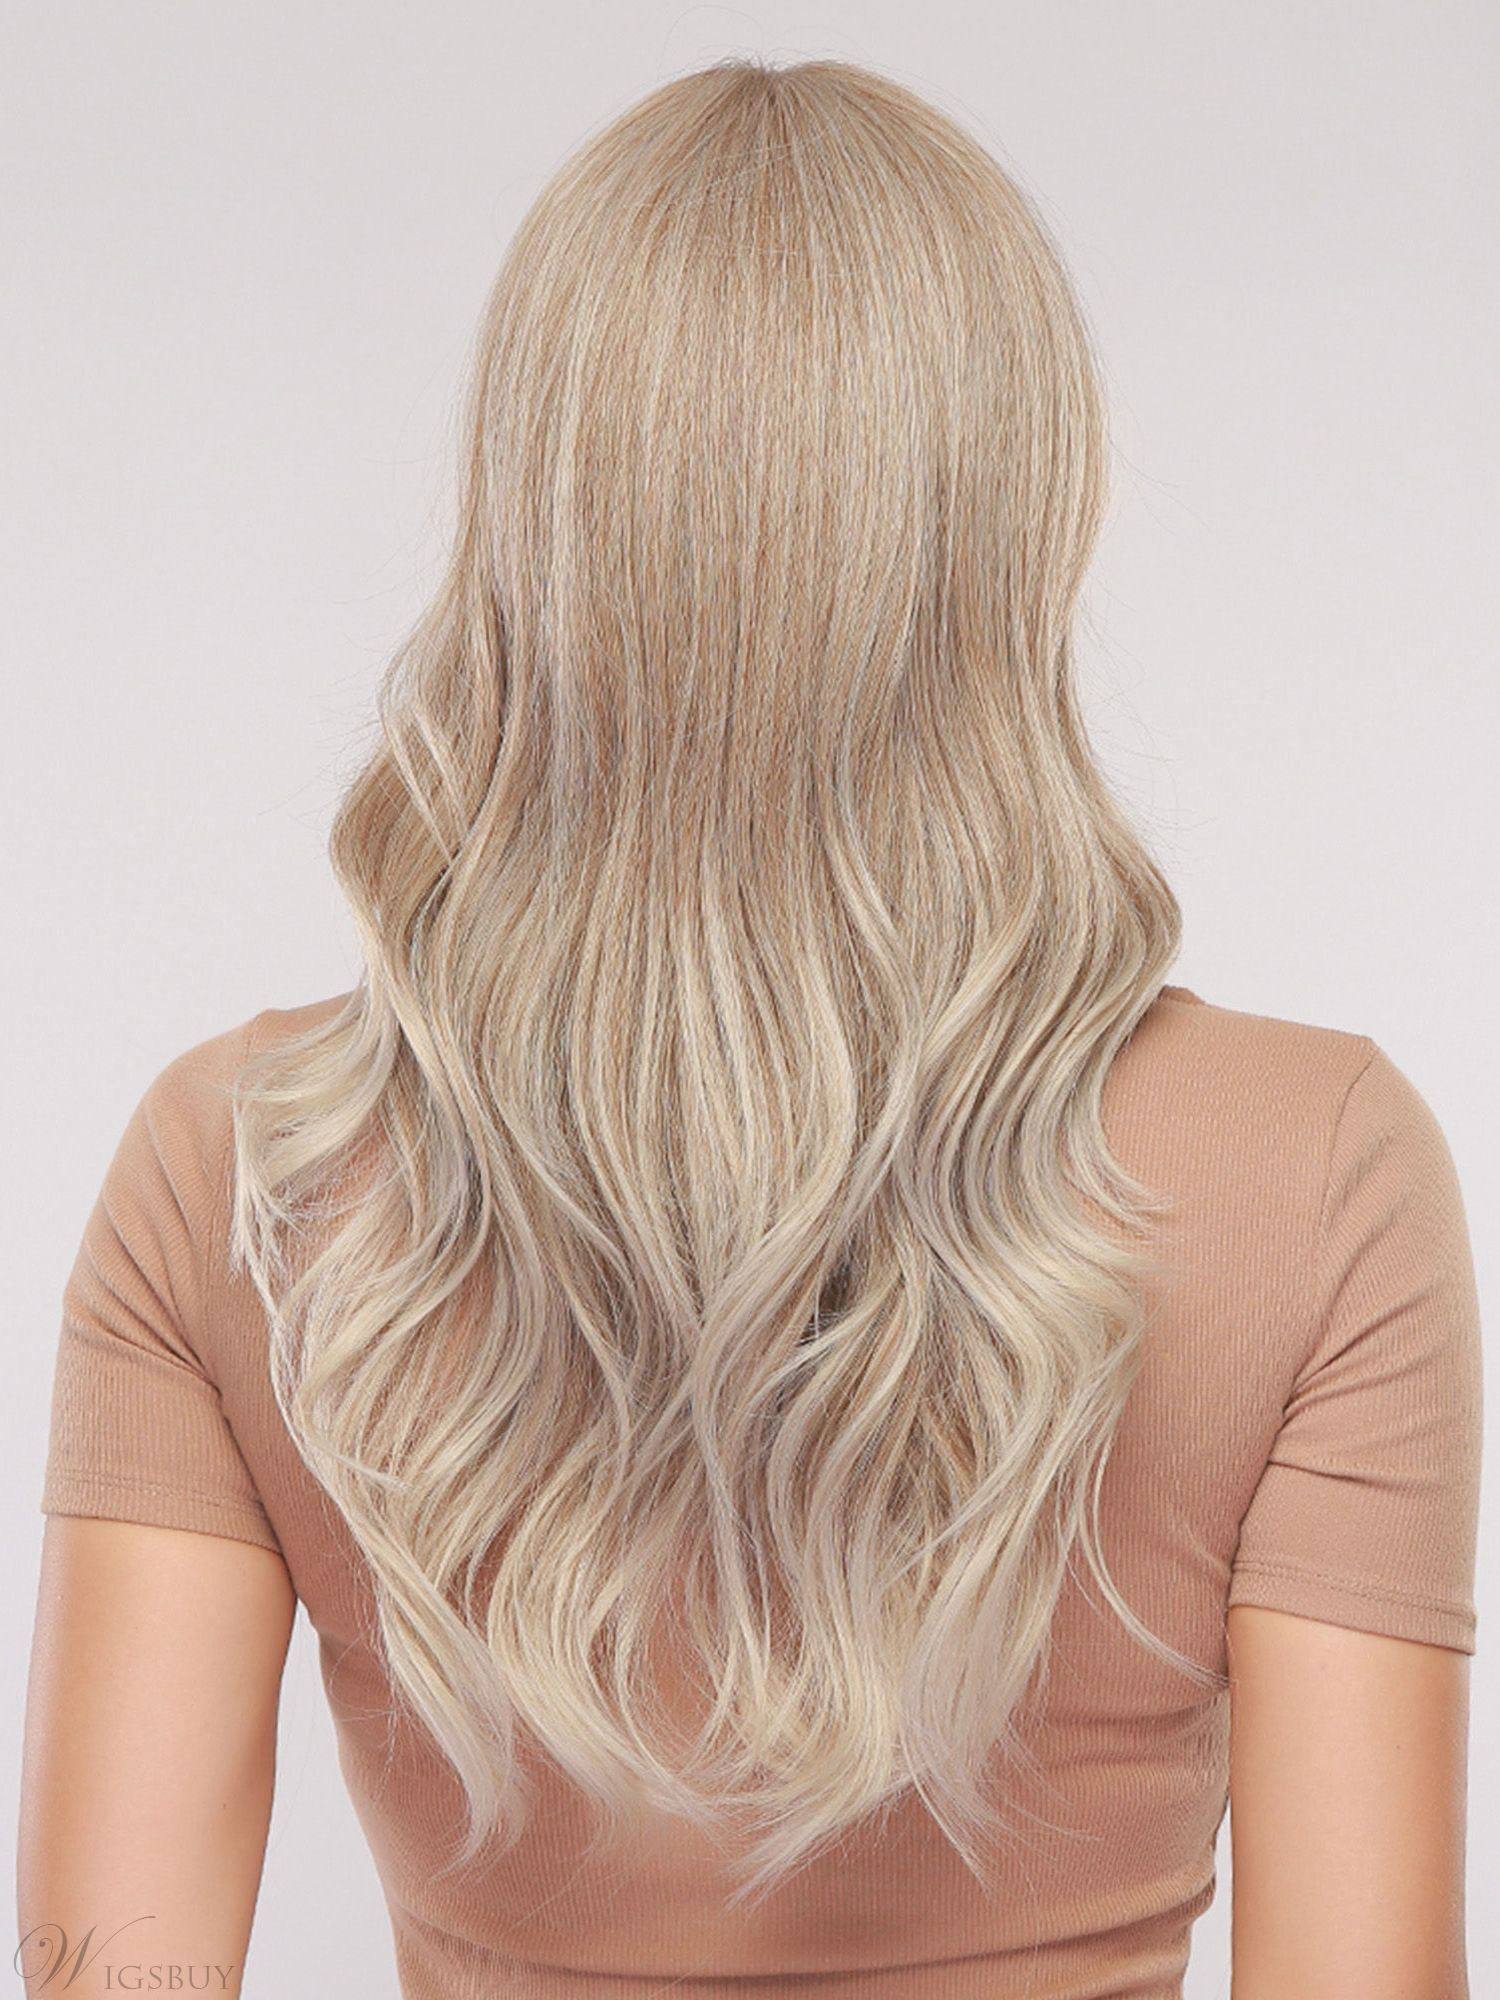 Silver Gray Long Wavy Synthetic Hair Wig With Bangs 24 Inches